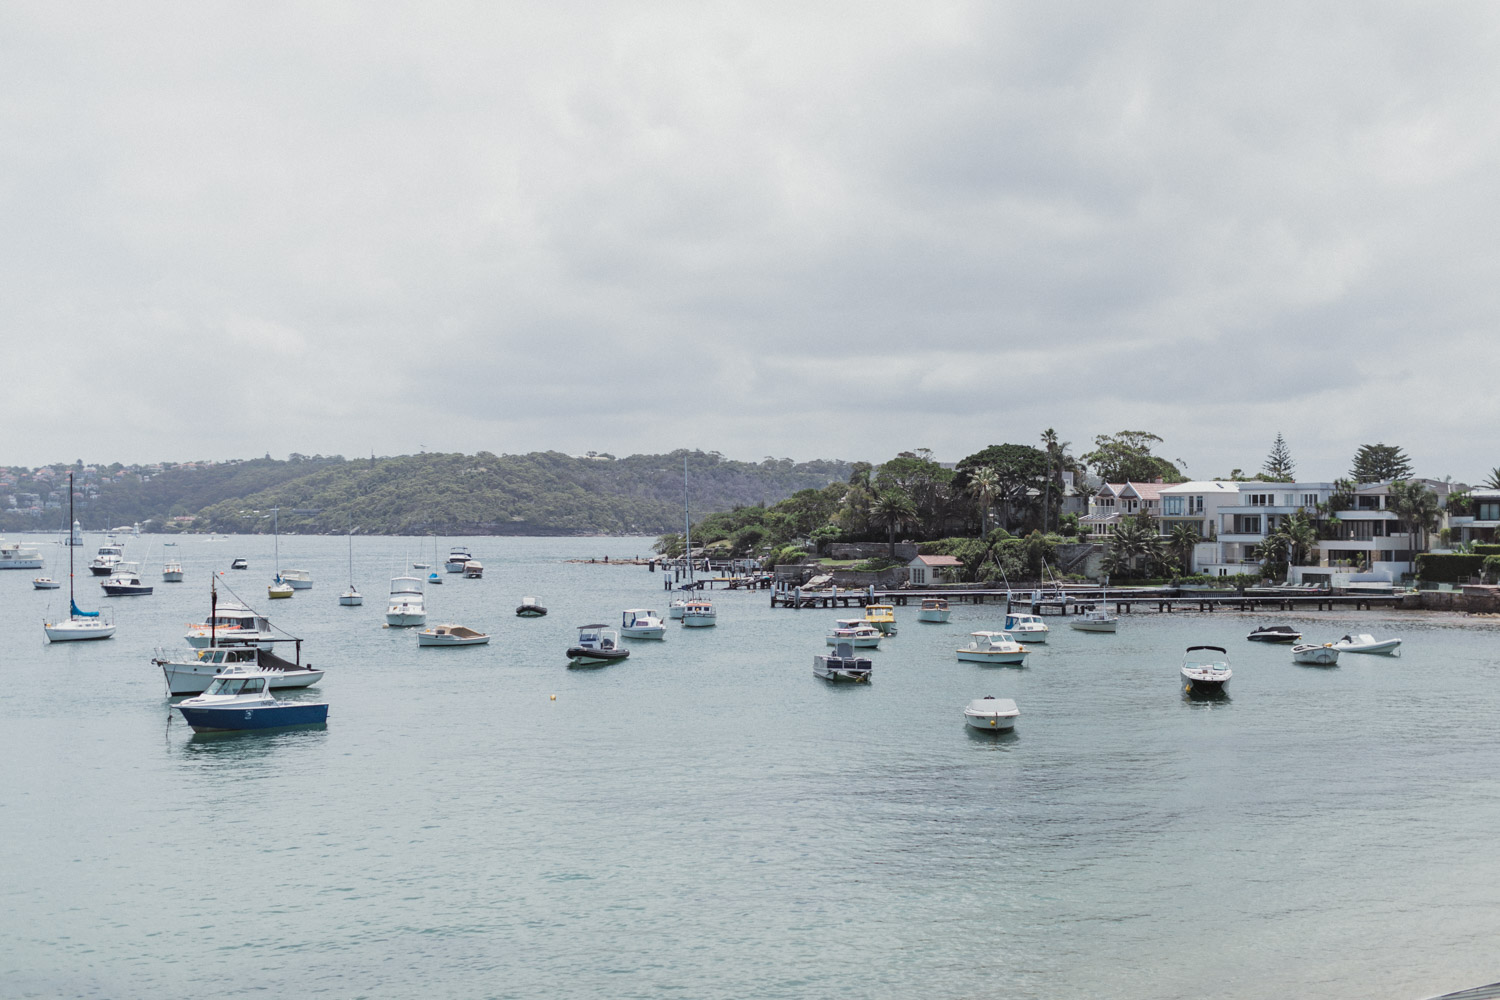 view from the watsons bay hotel